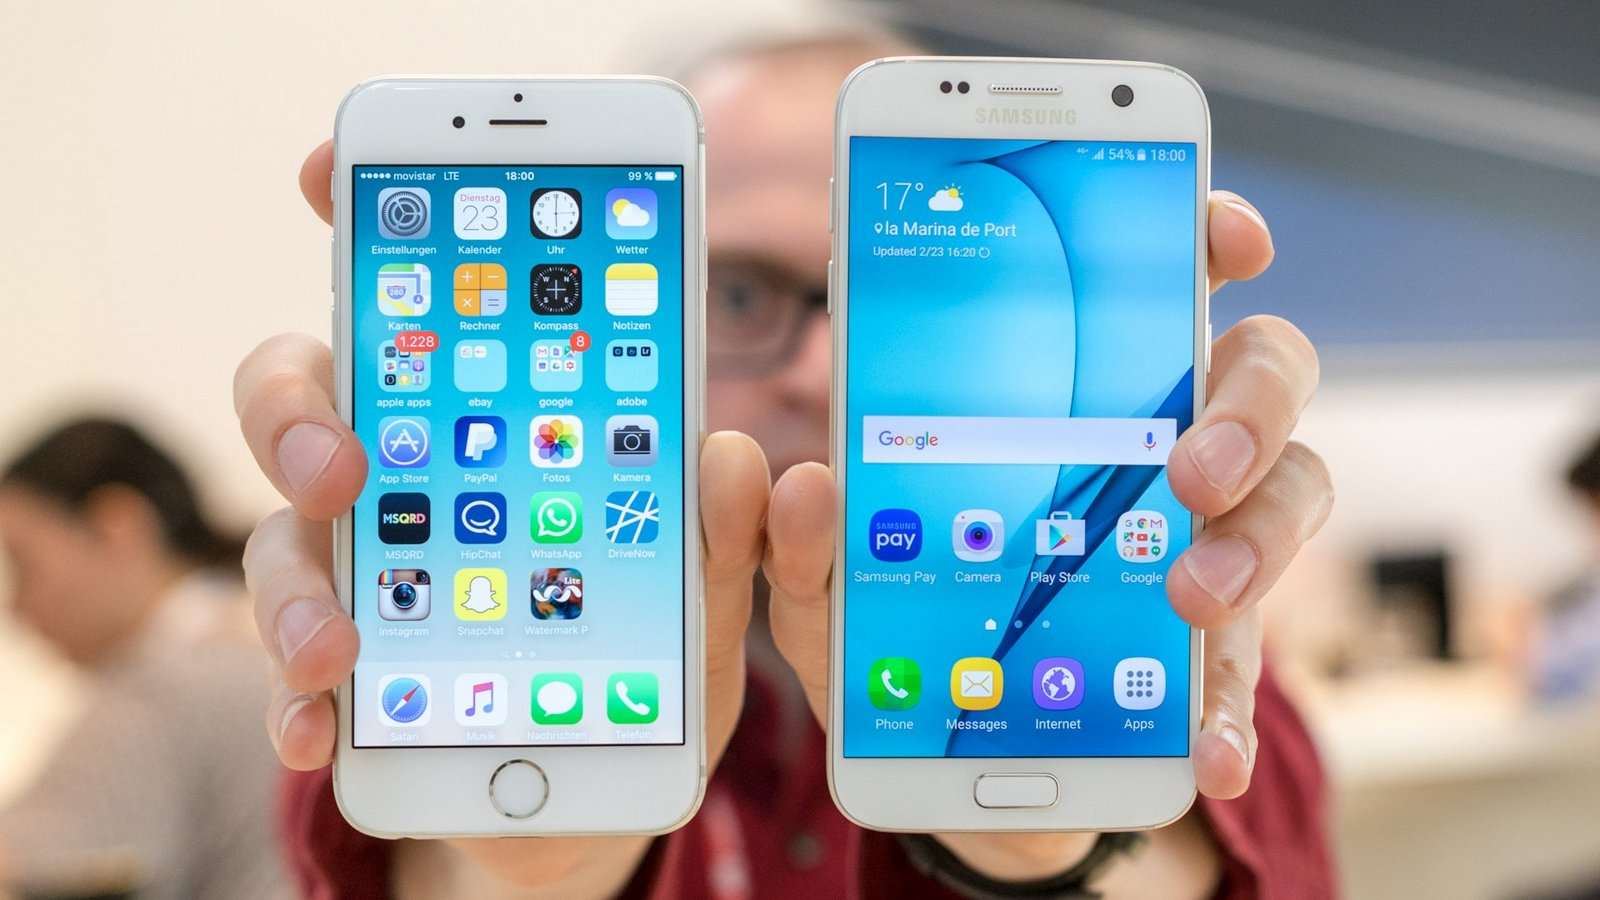 the iPhone 6 has surpassed the games Galaxy S7 and HTC 10